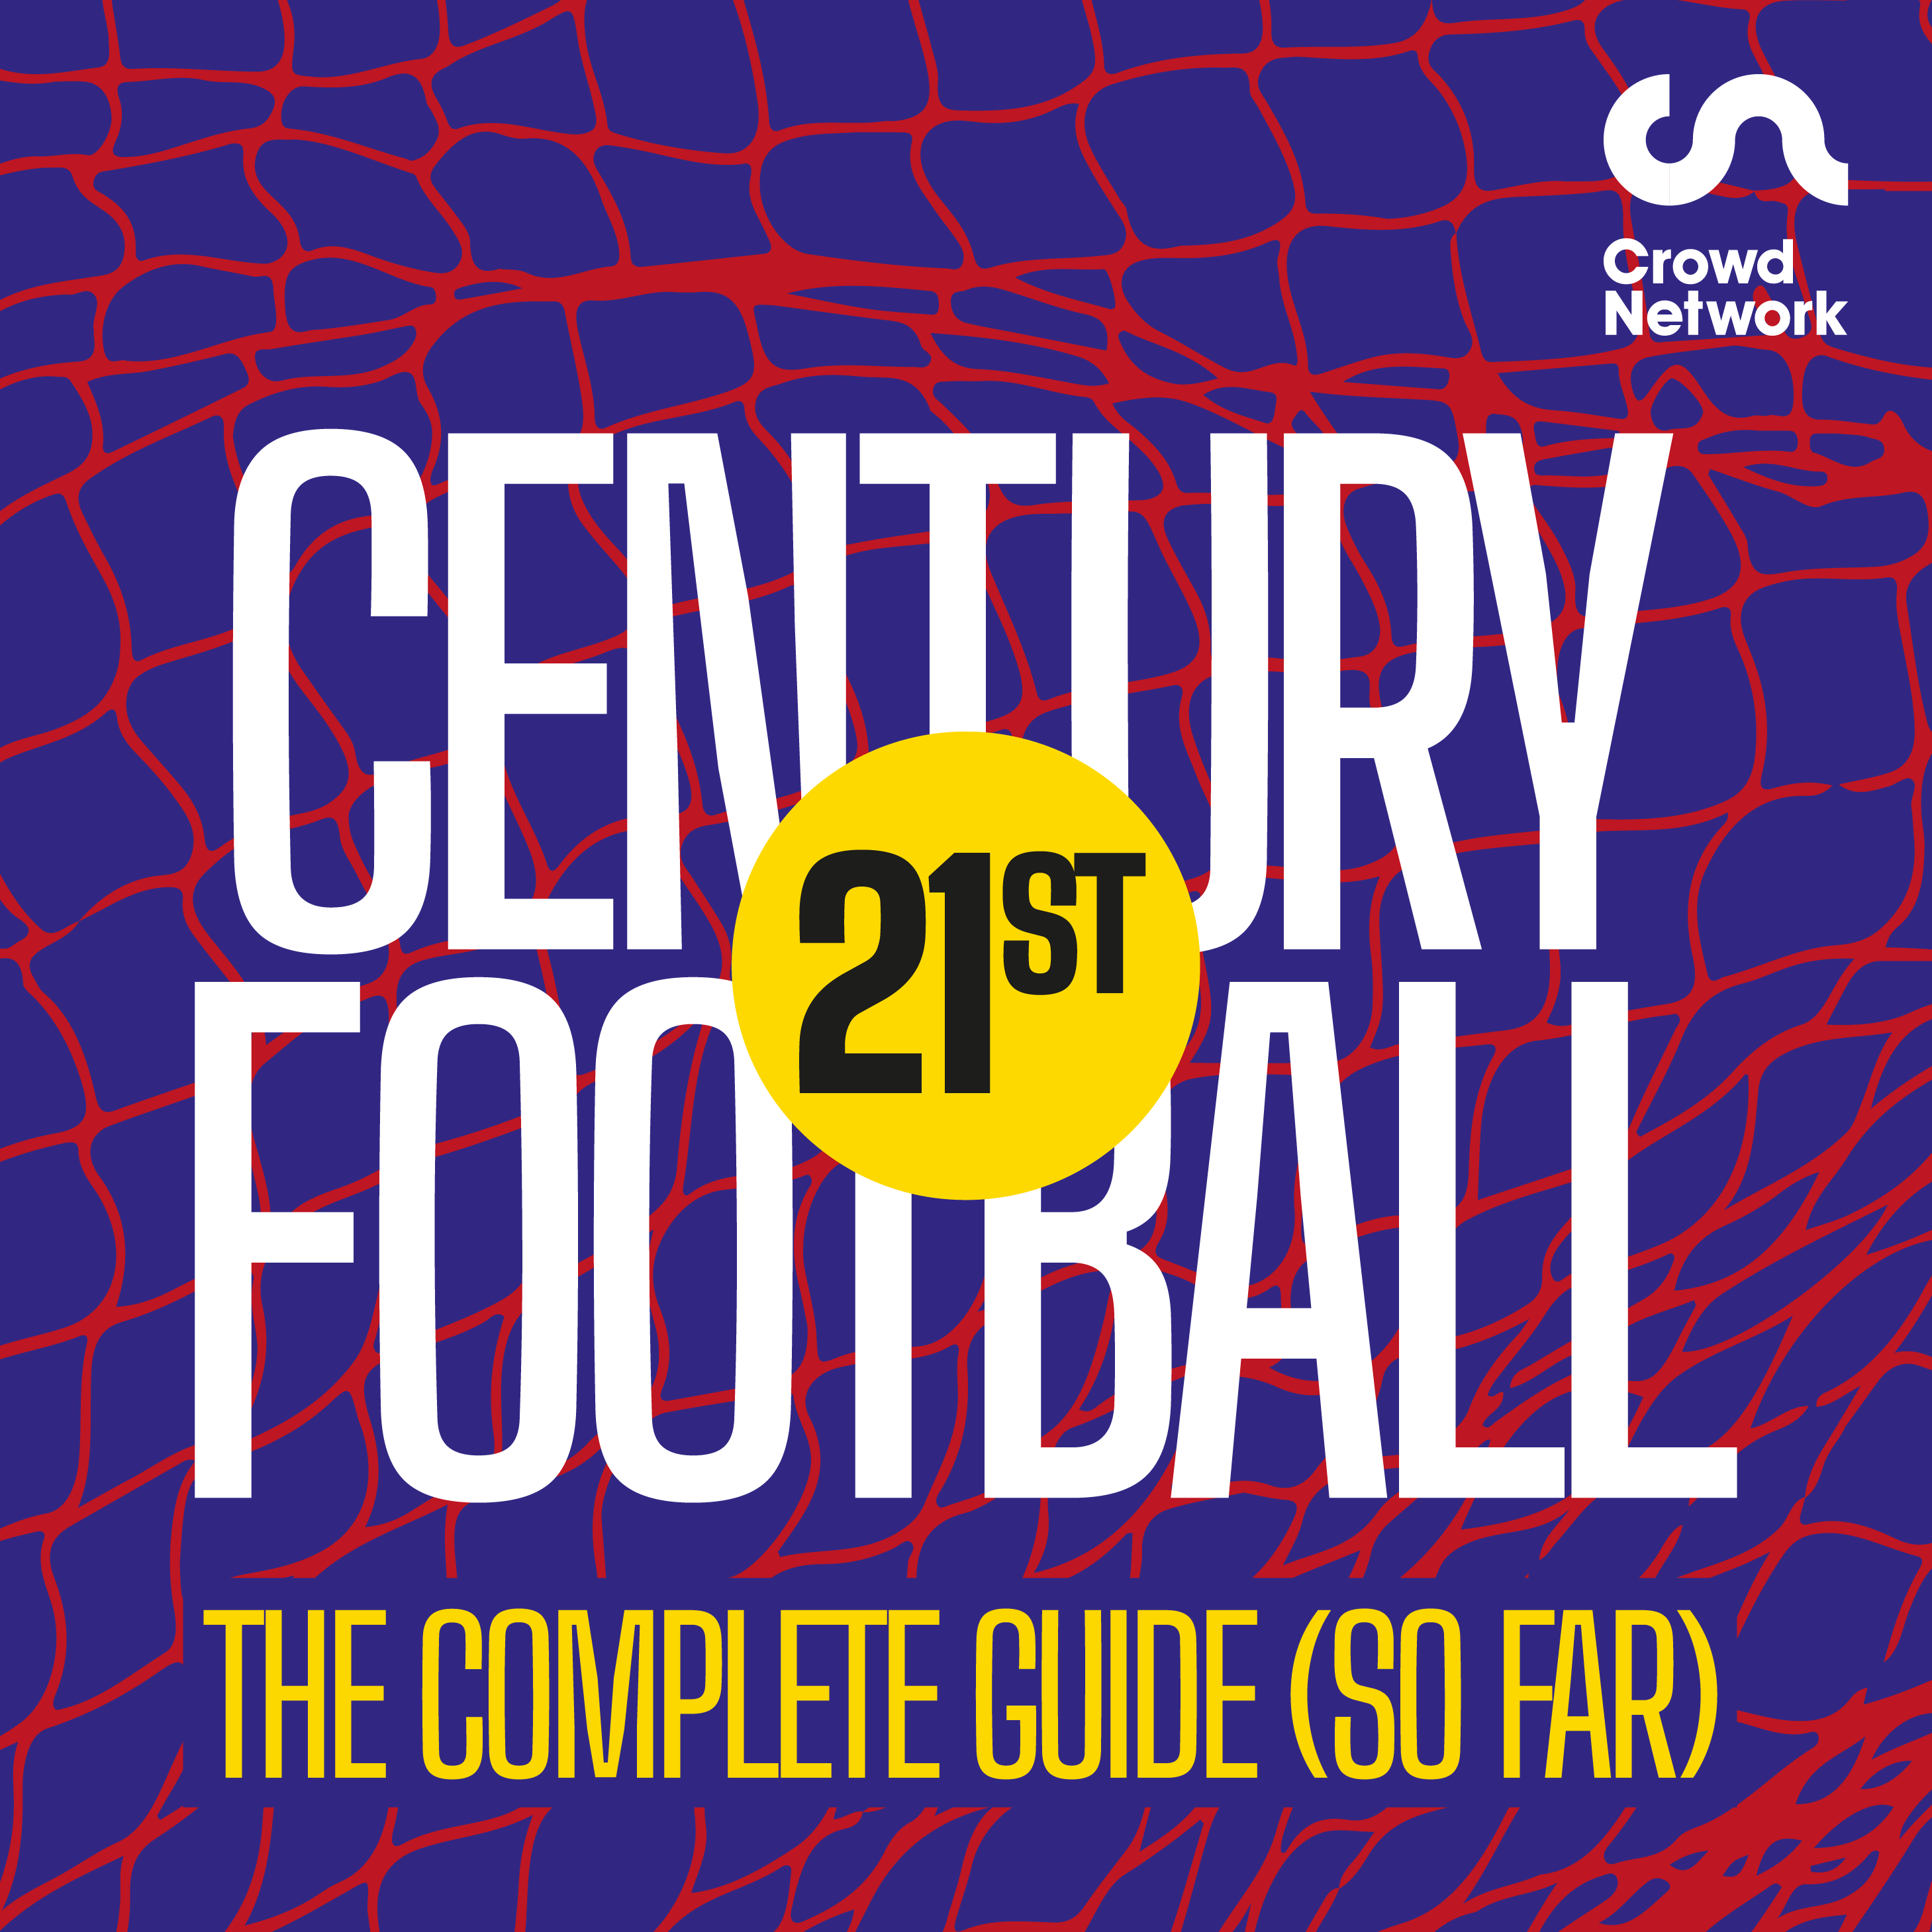 21st century football the complete